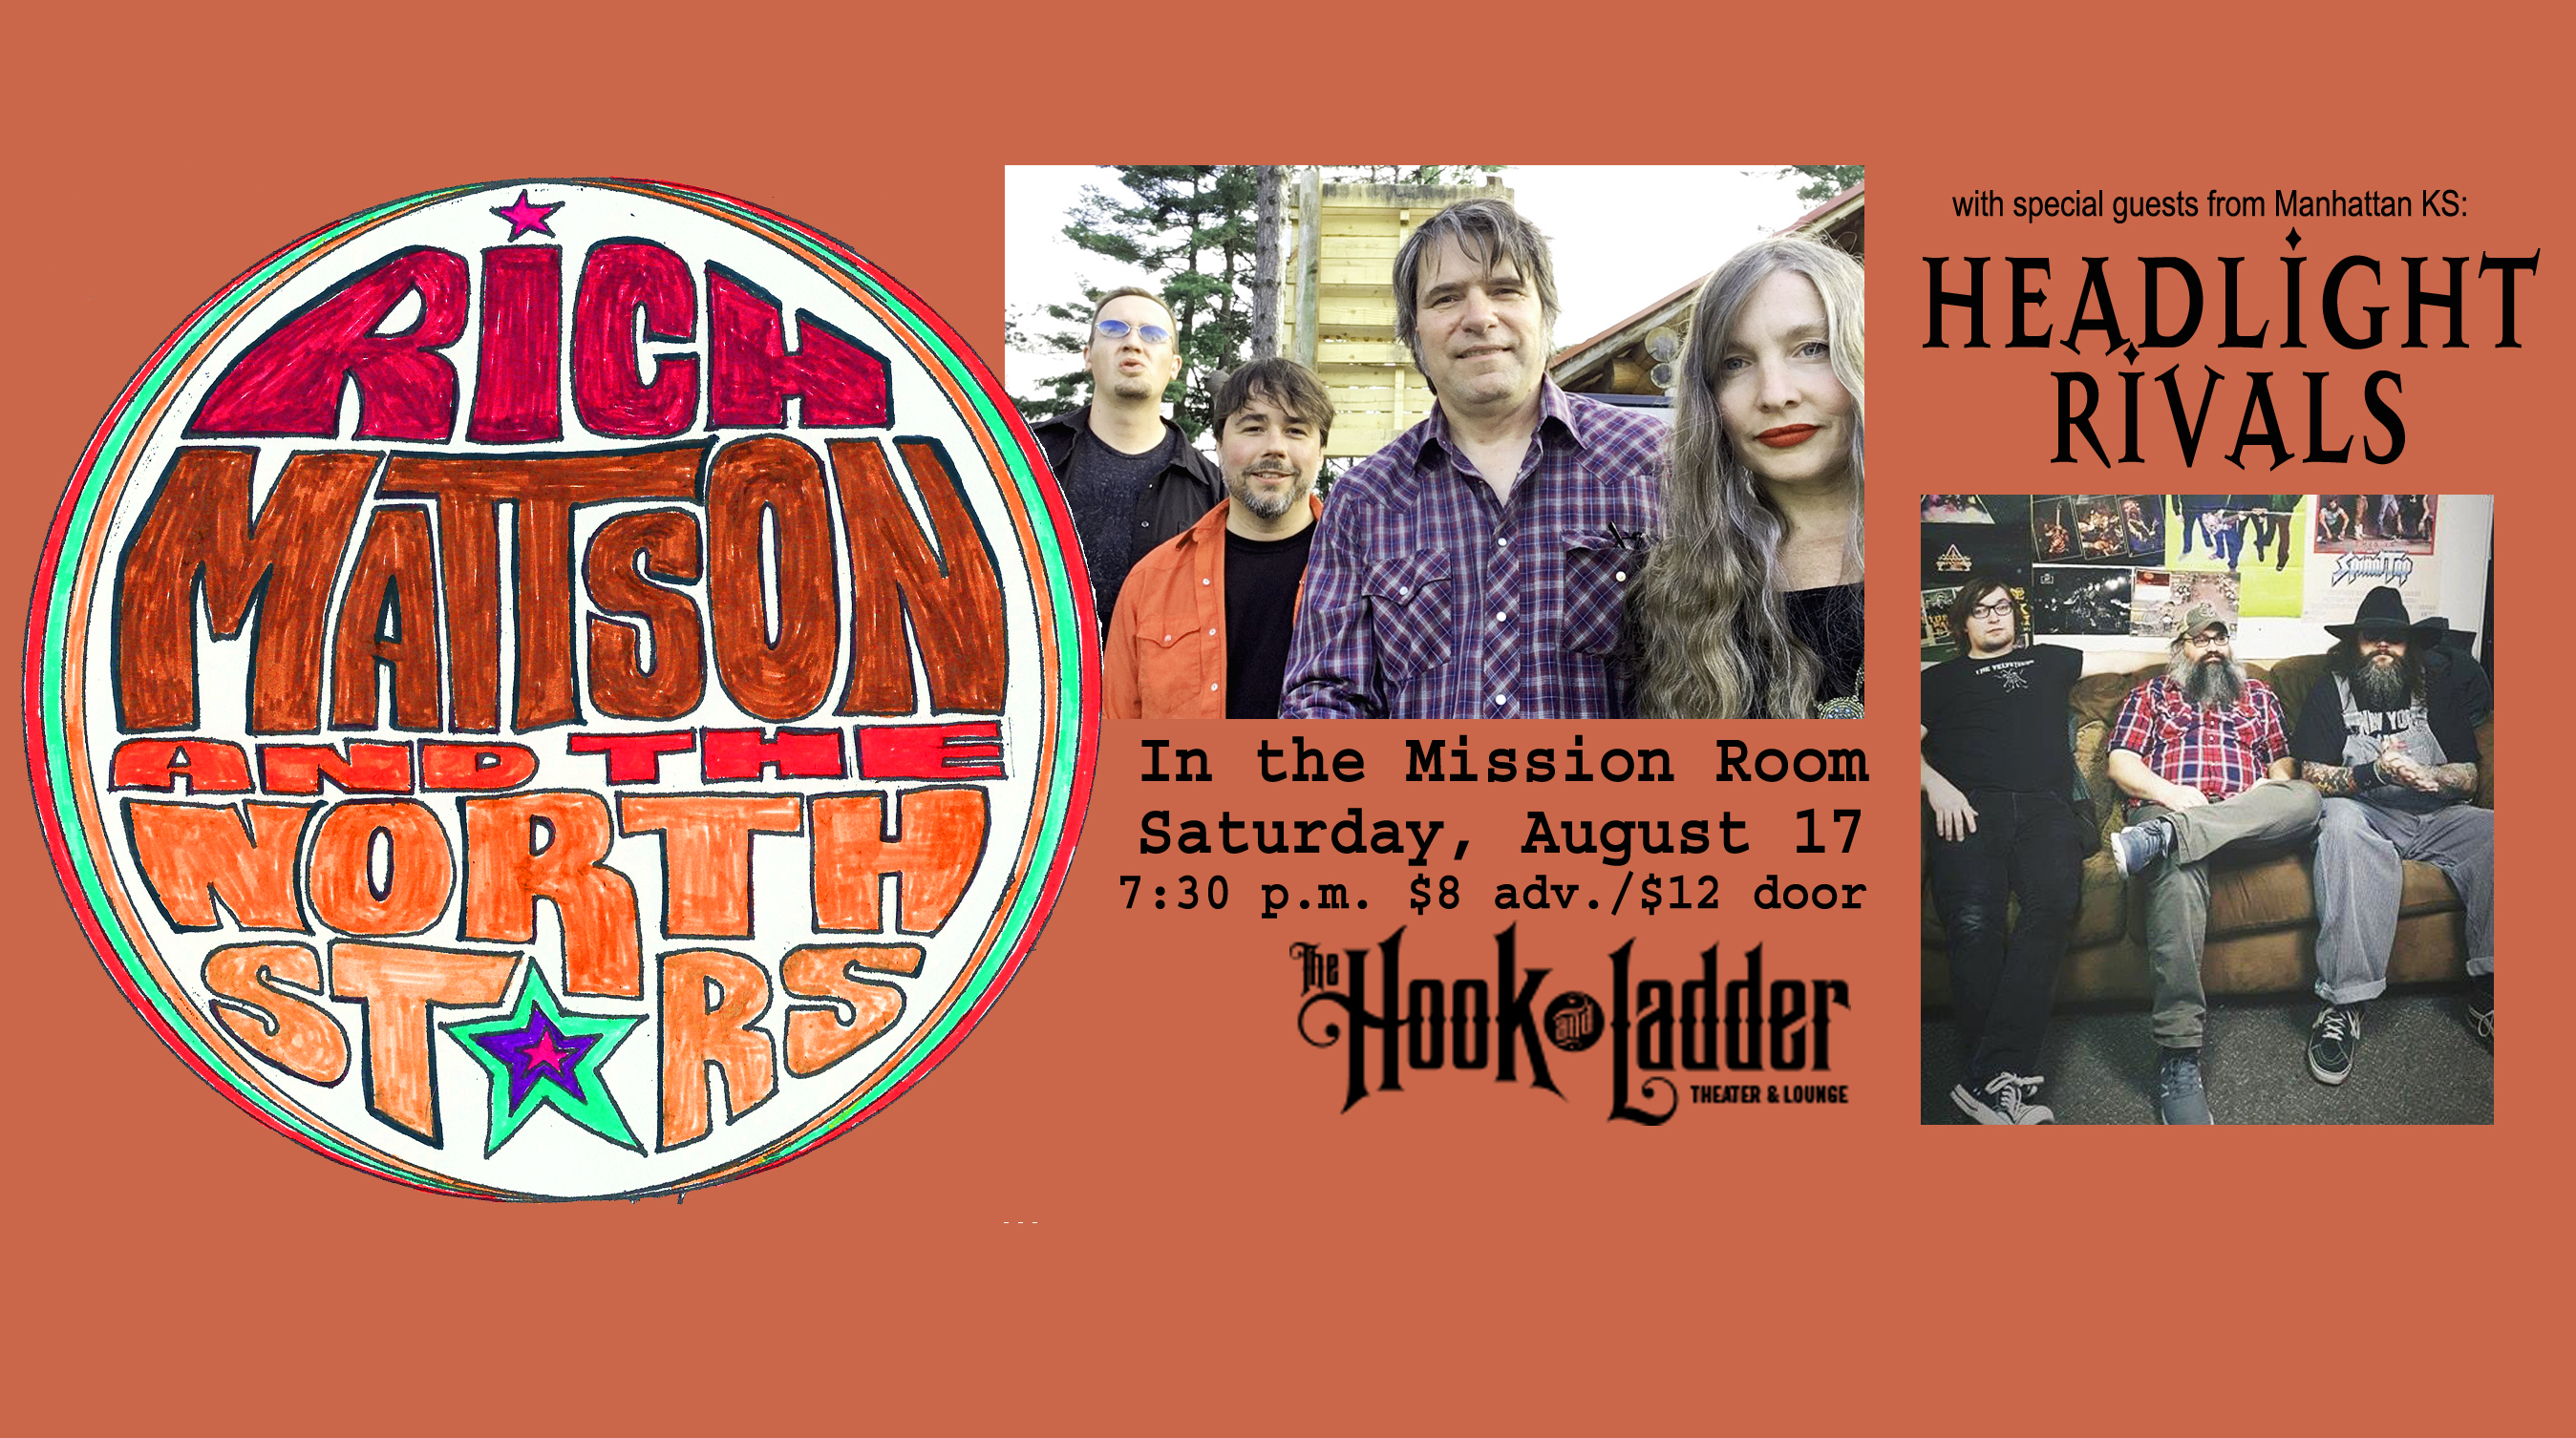 Rich Mattson & The Northstars with special guests Headlight Rivals (KS) on Saturday, August 17 at The Hook and Ladder Mission Room